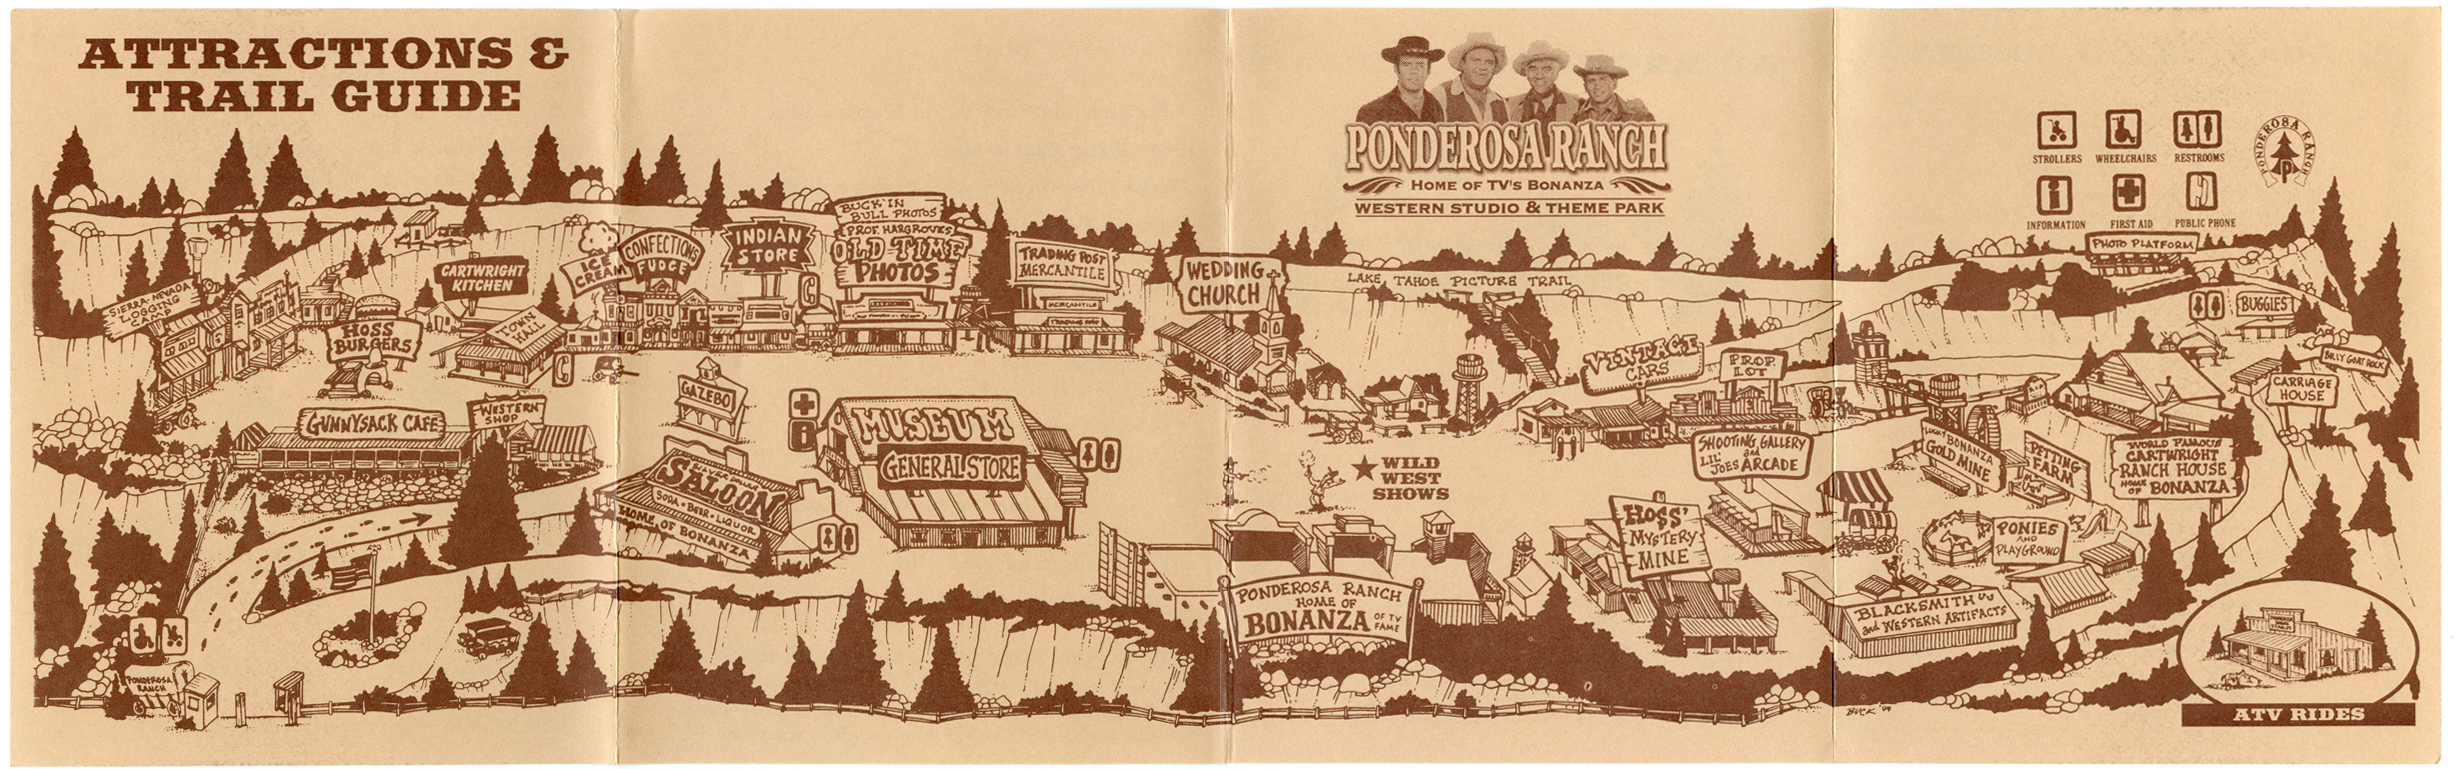 Ponderosa Ranch, Western Studio and Theme Park, Attractions and Trail Guide, Map